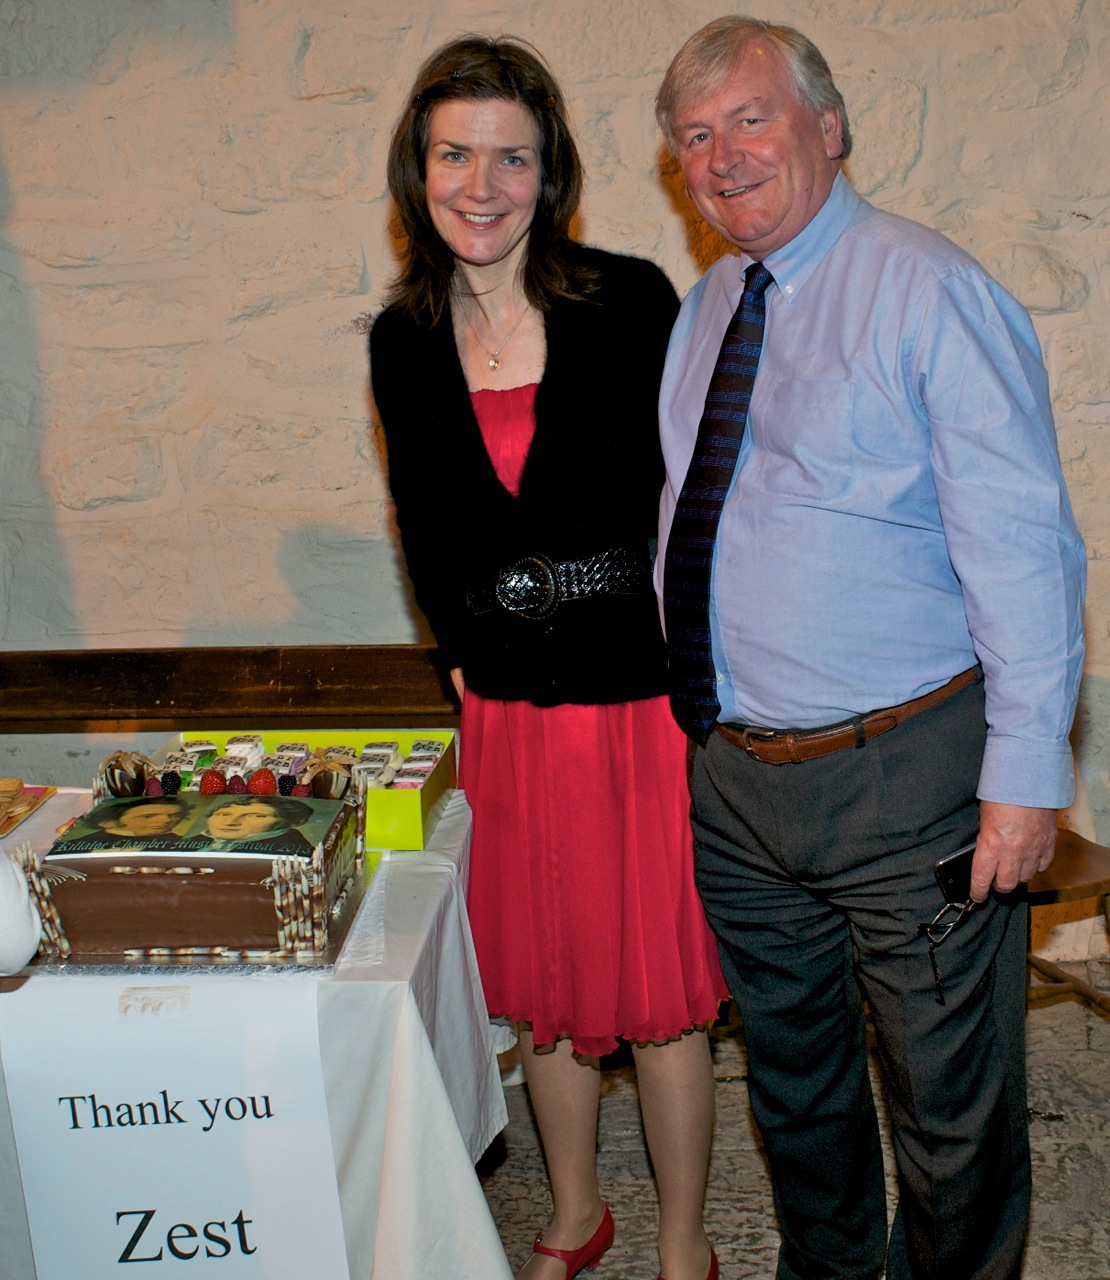 Diane Daly and John Horgan with Cakes donated by Zest